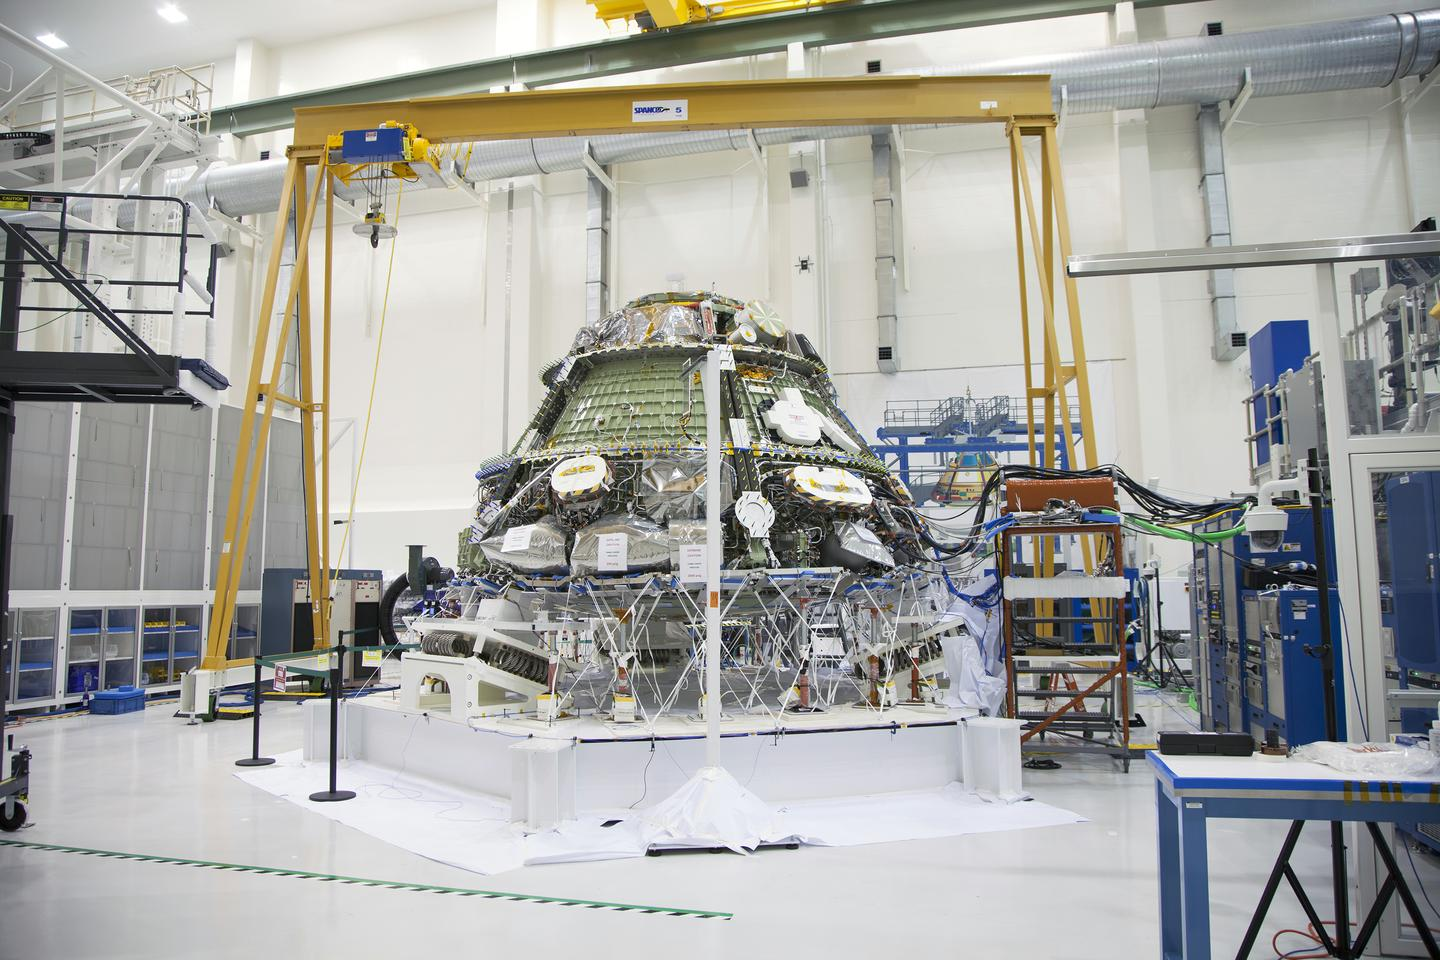 The Orion crew module has been comprehensively vibration tested to ensure that it could survive the rigors of EFT-1 (Photo: NASA, Daniel Casper)